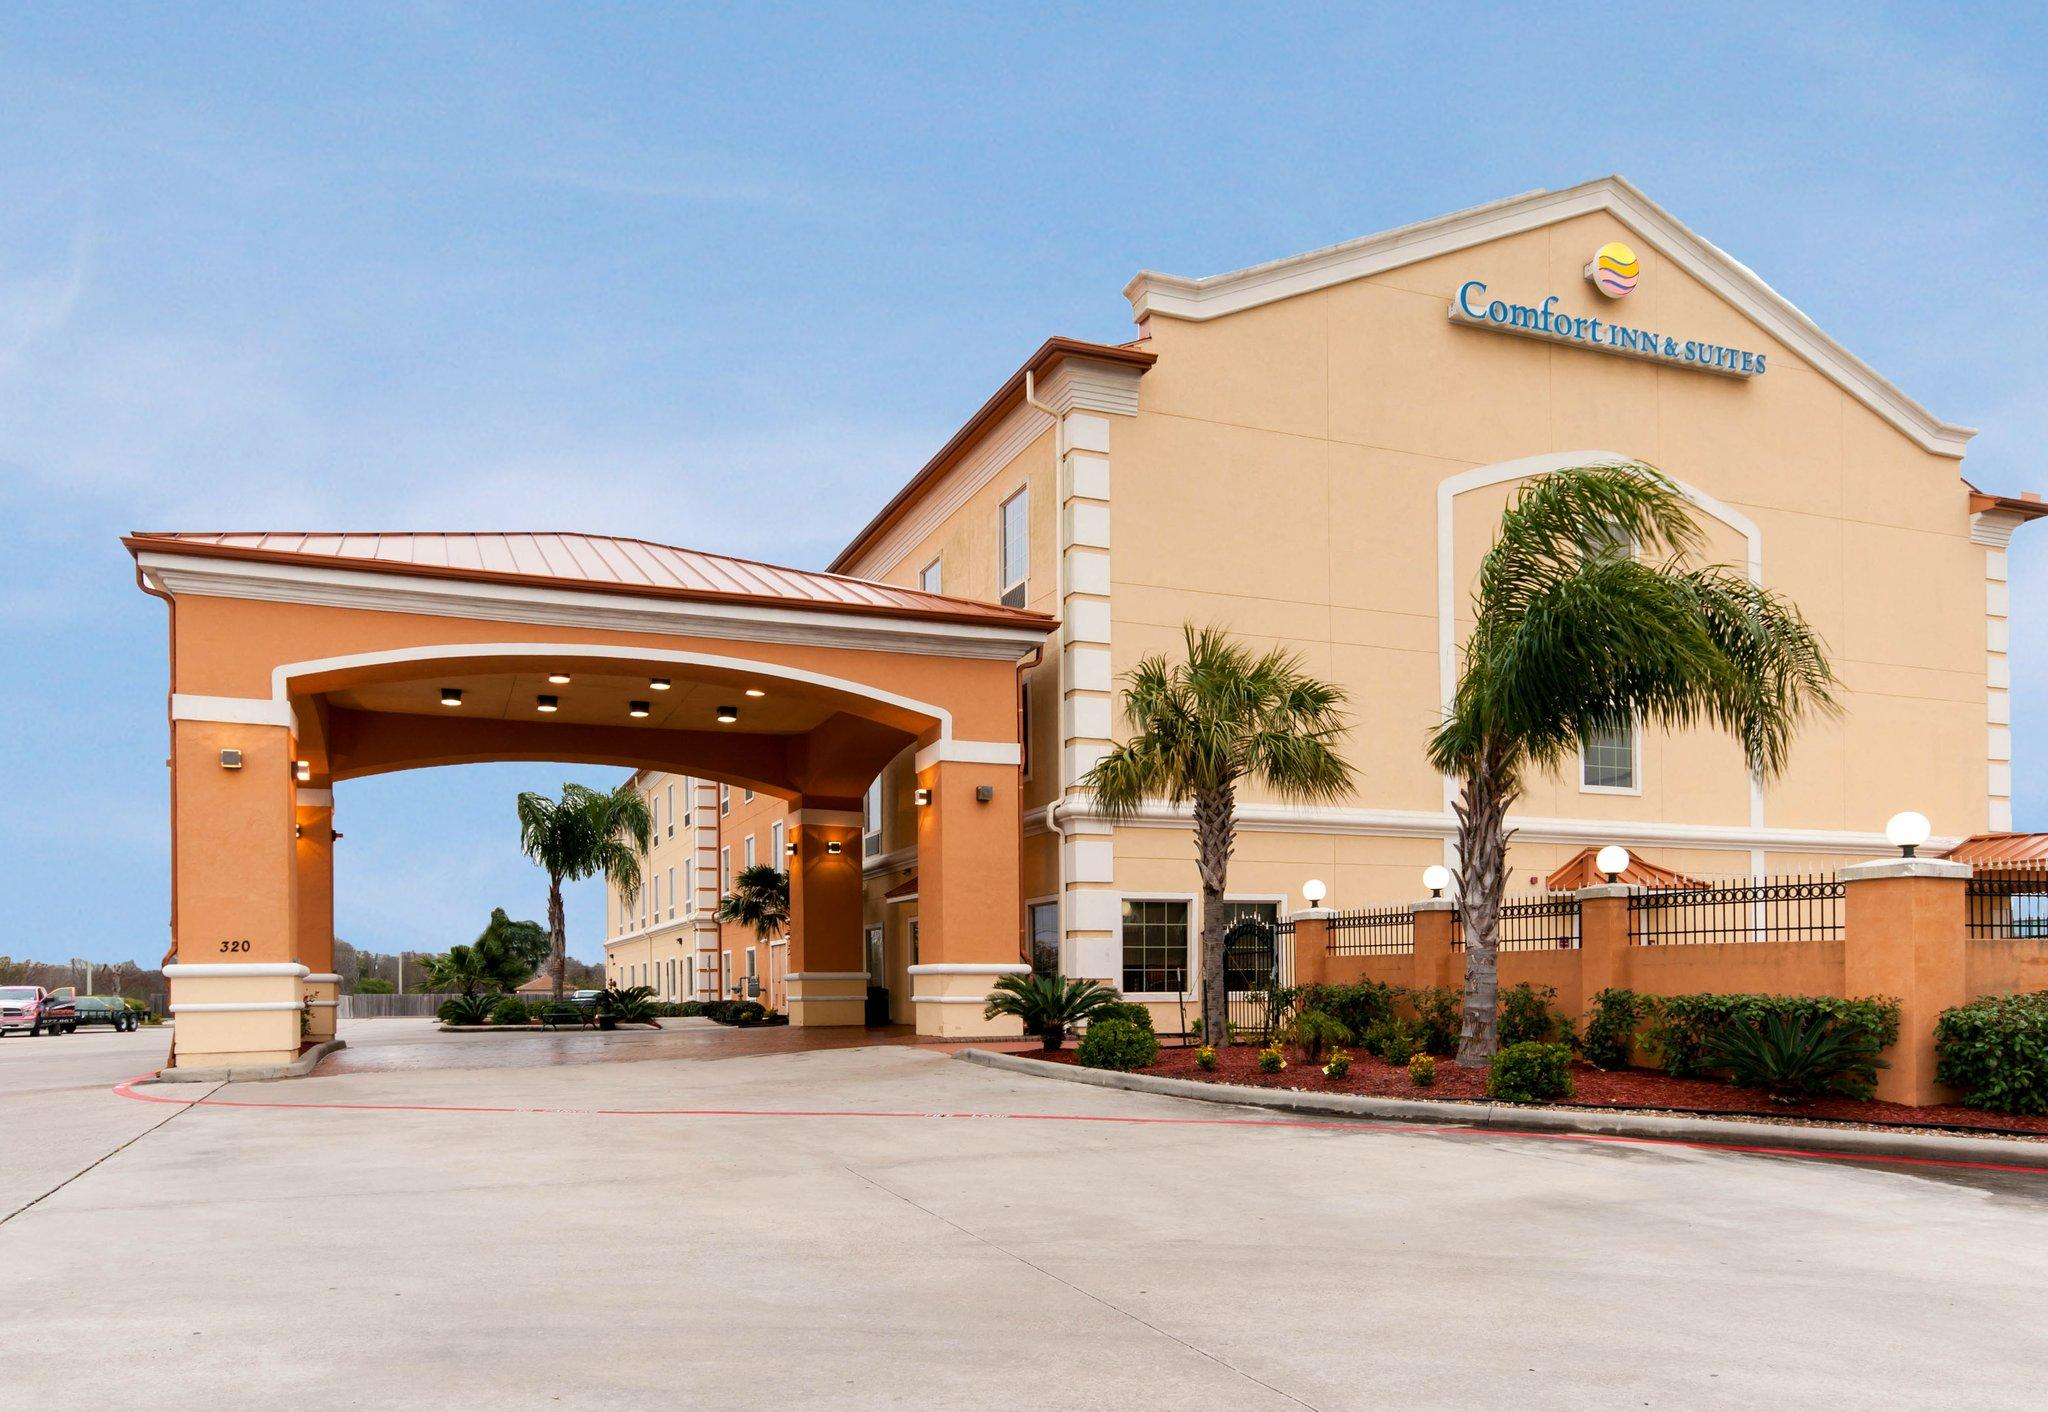 Comfort Inn & Suites Galveston Bay Refineries